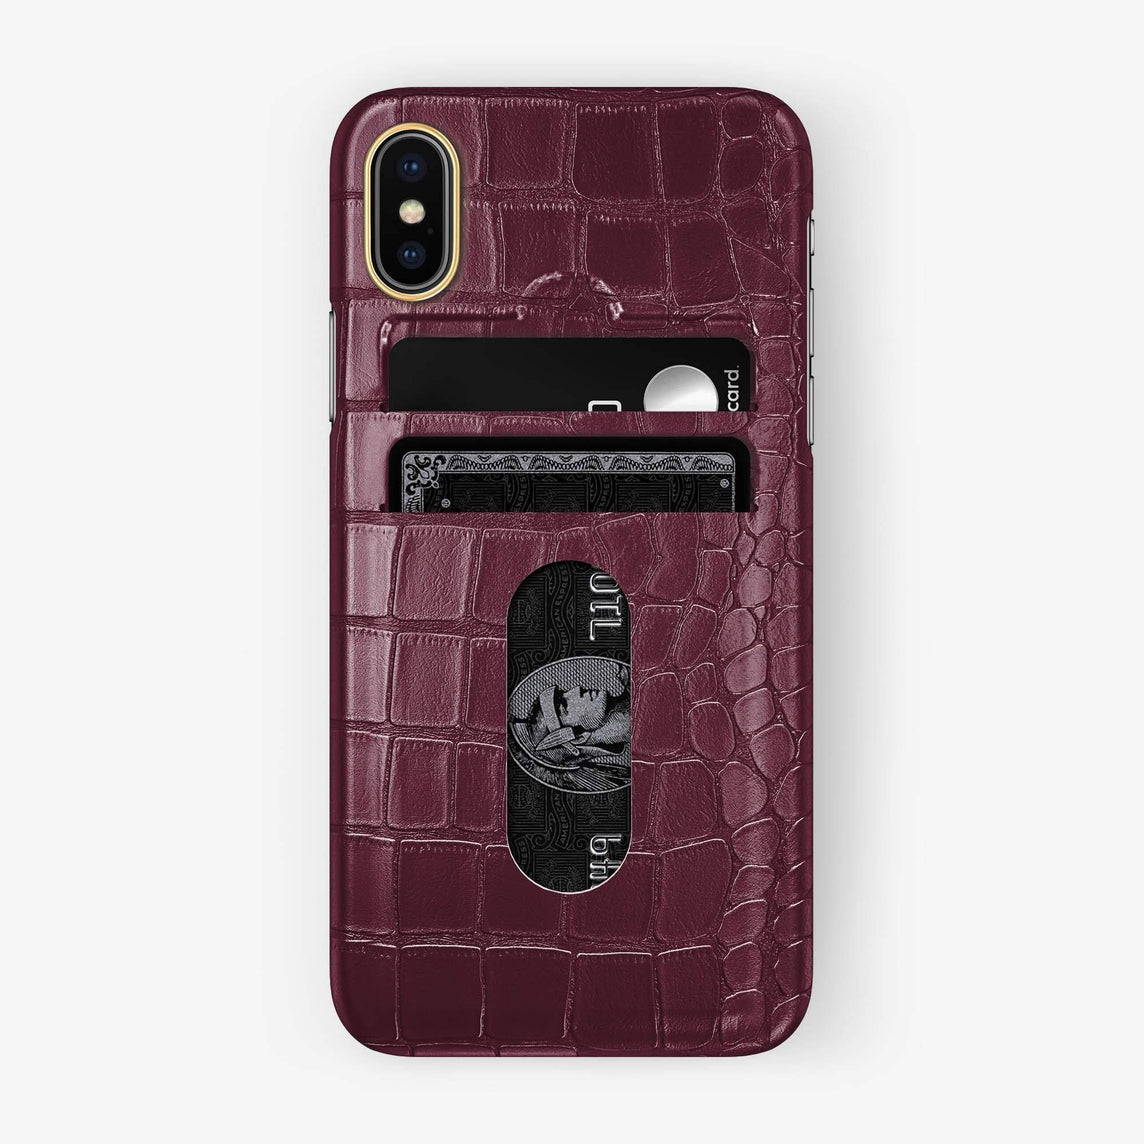 Alligator Card Holder Case iPhone Xs Max | Burgundy - Yellow Gold